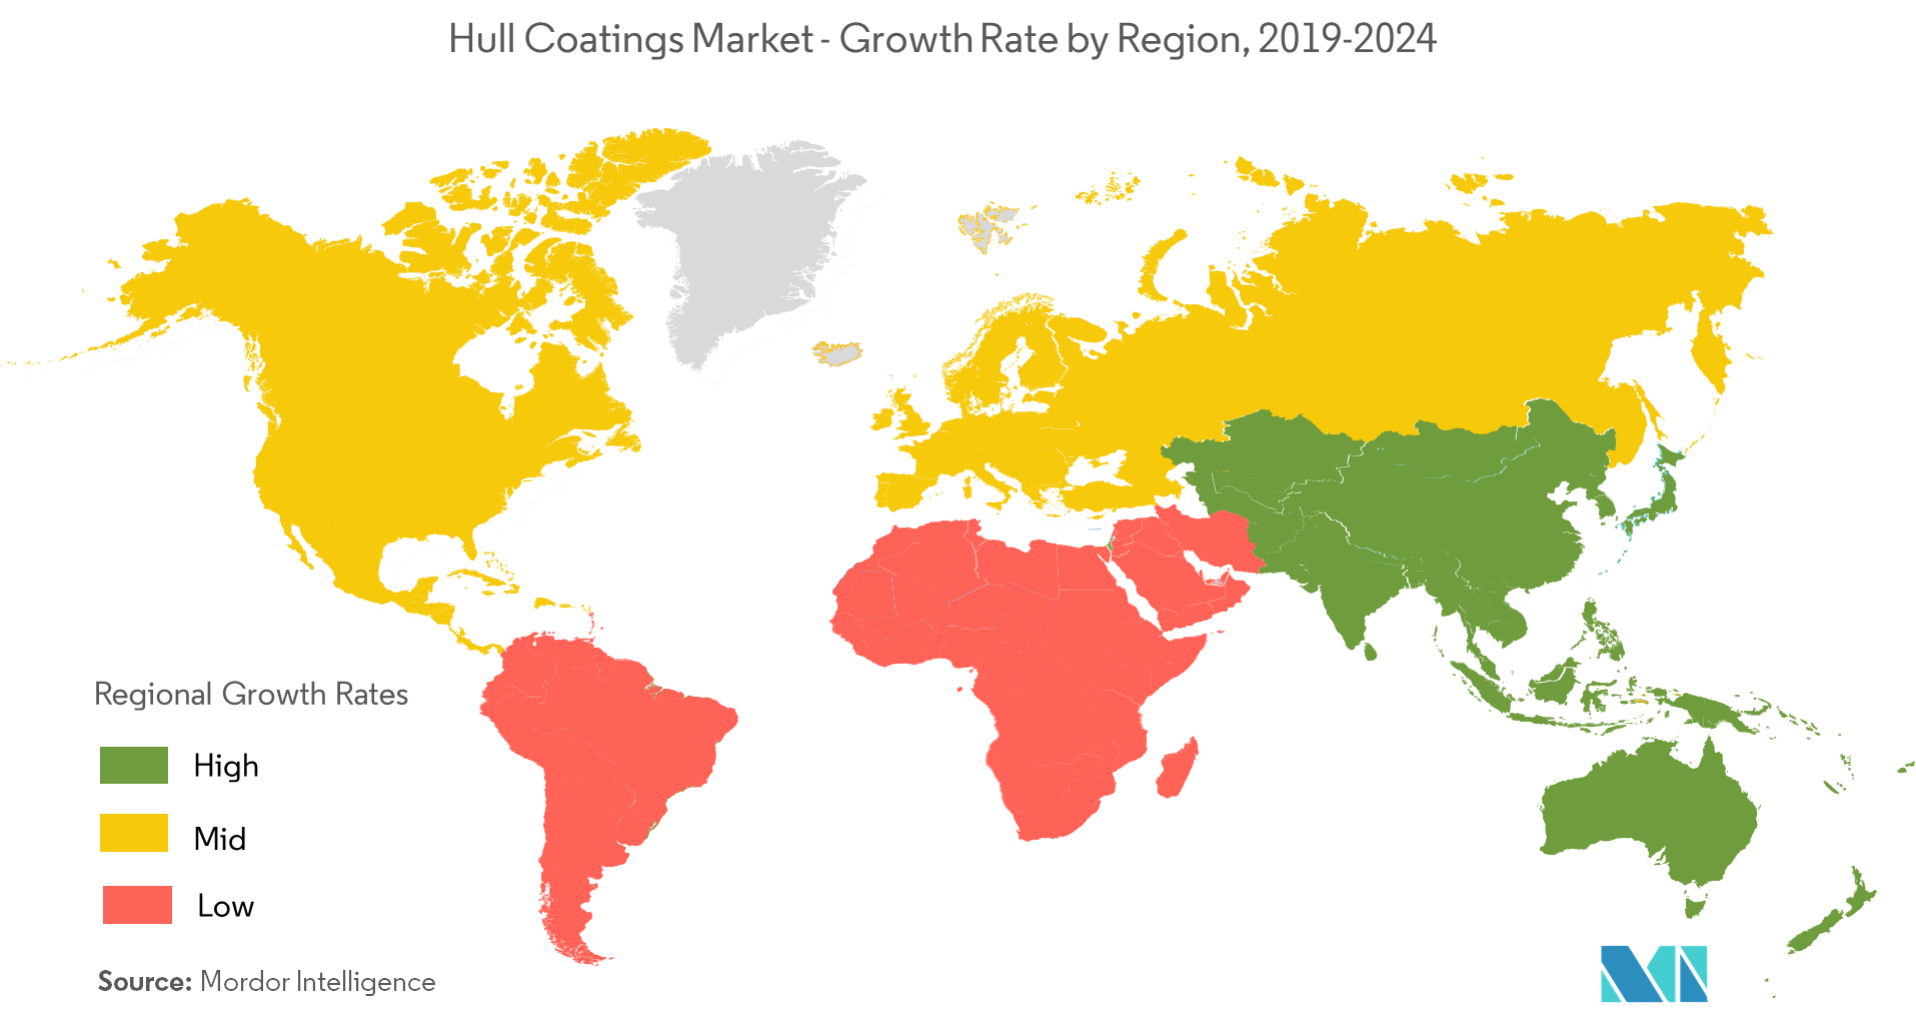 Hull Coatings Market - Regional Trends